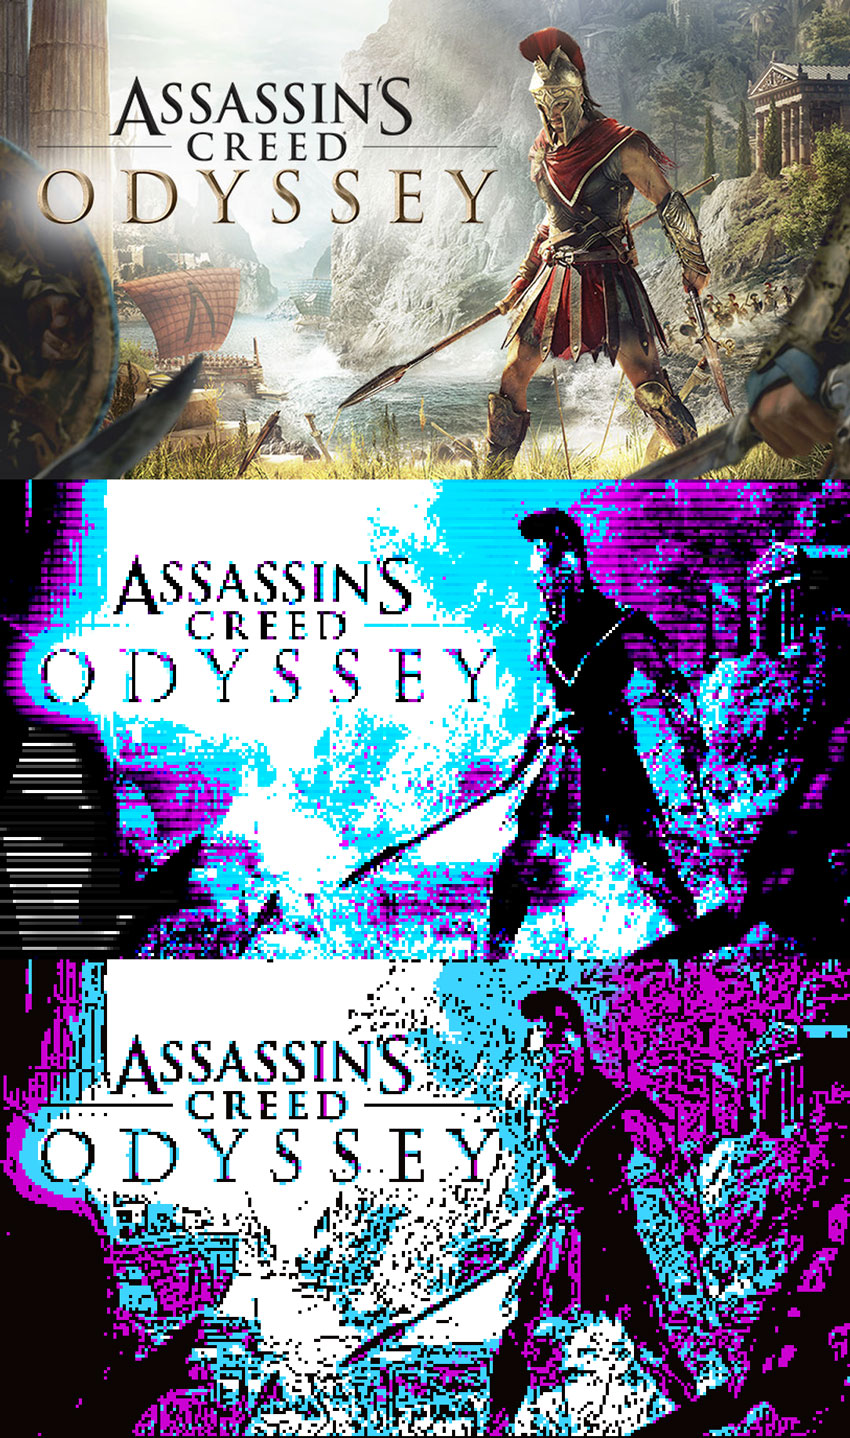 Assassin's Creed Odysey In CGA Colors